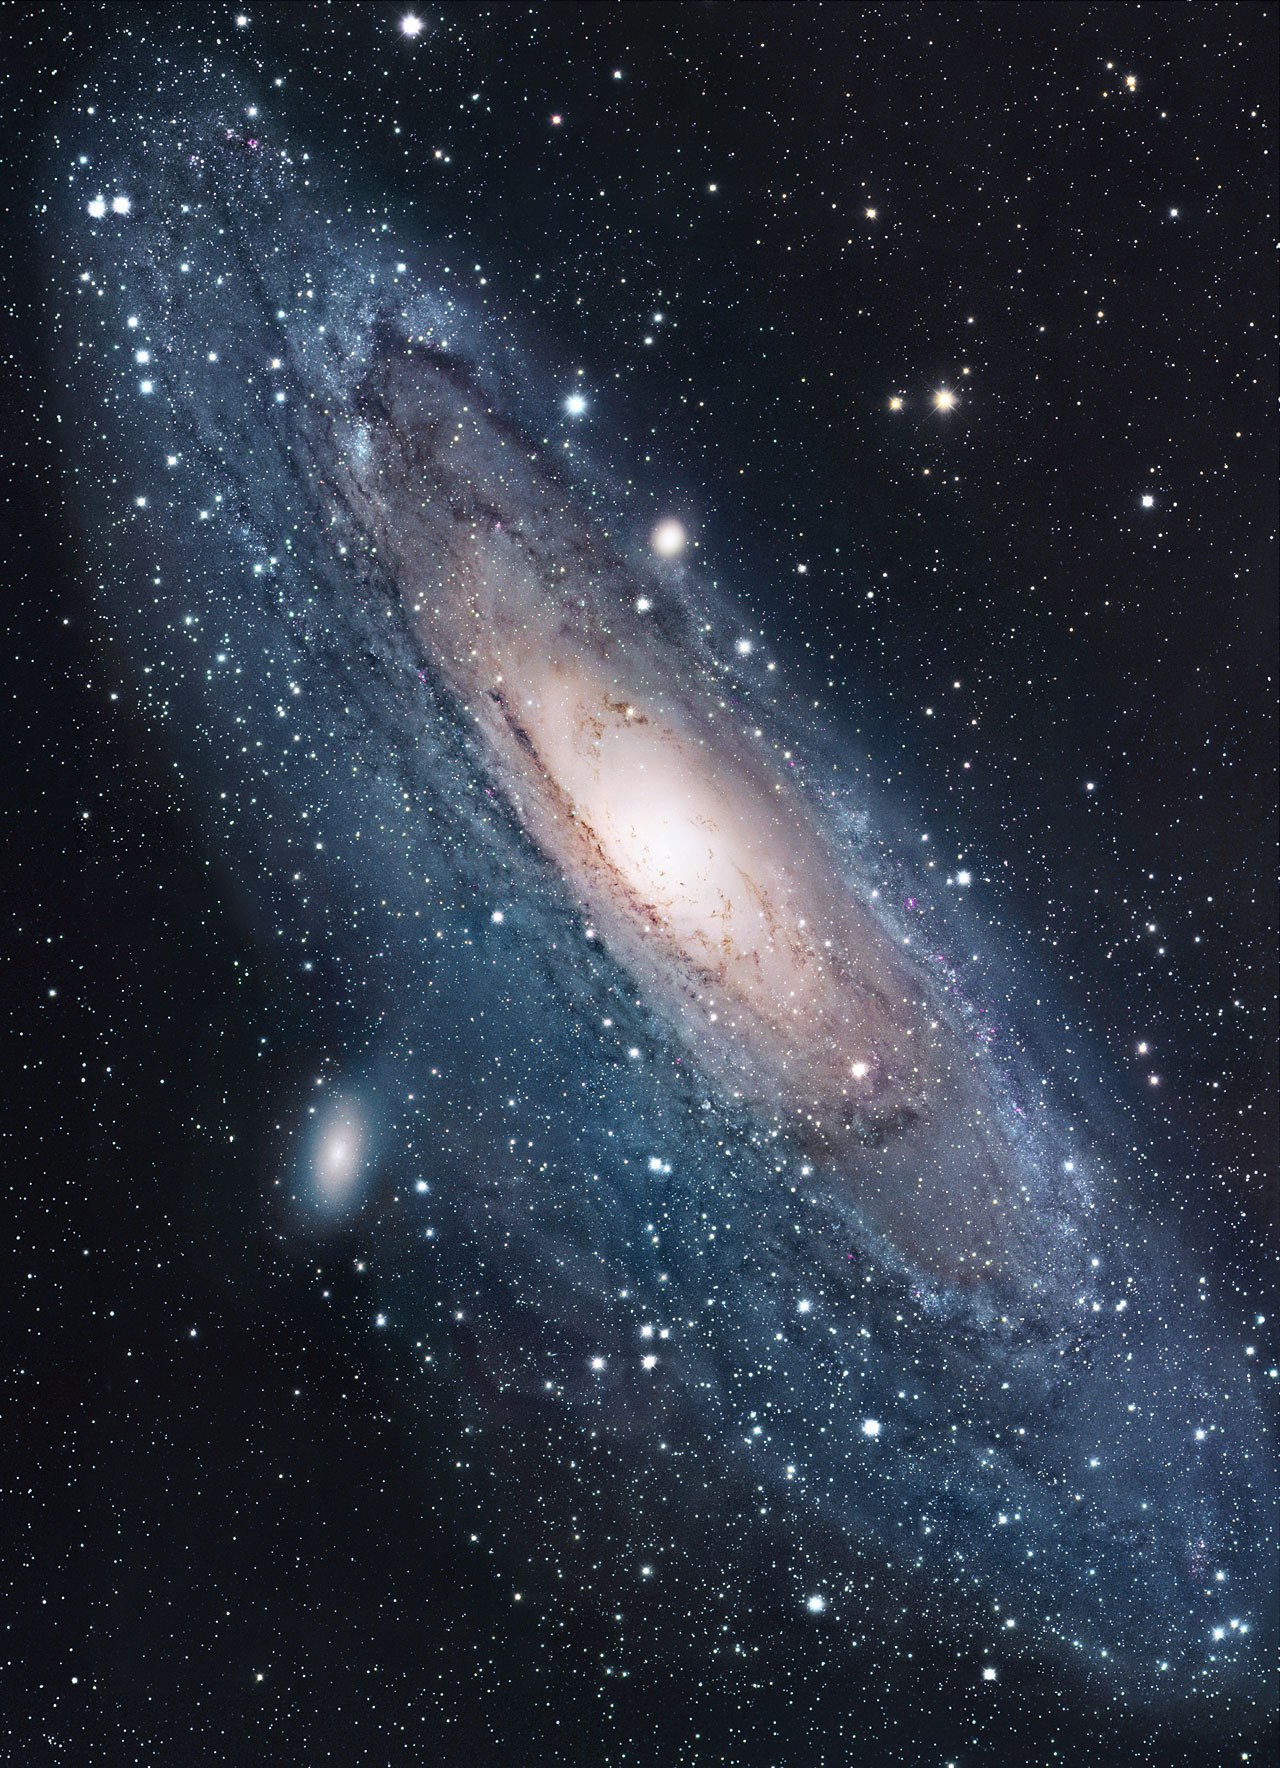 andromeda galaxy from earth telescope - photo #23